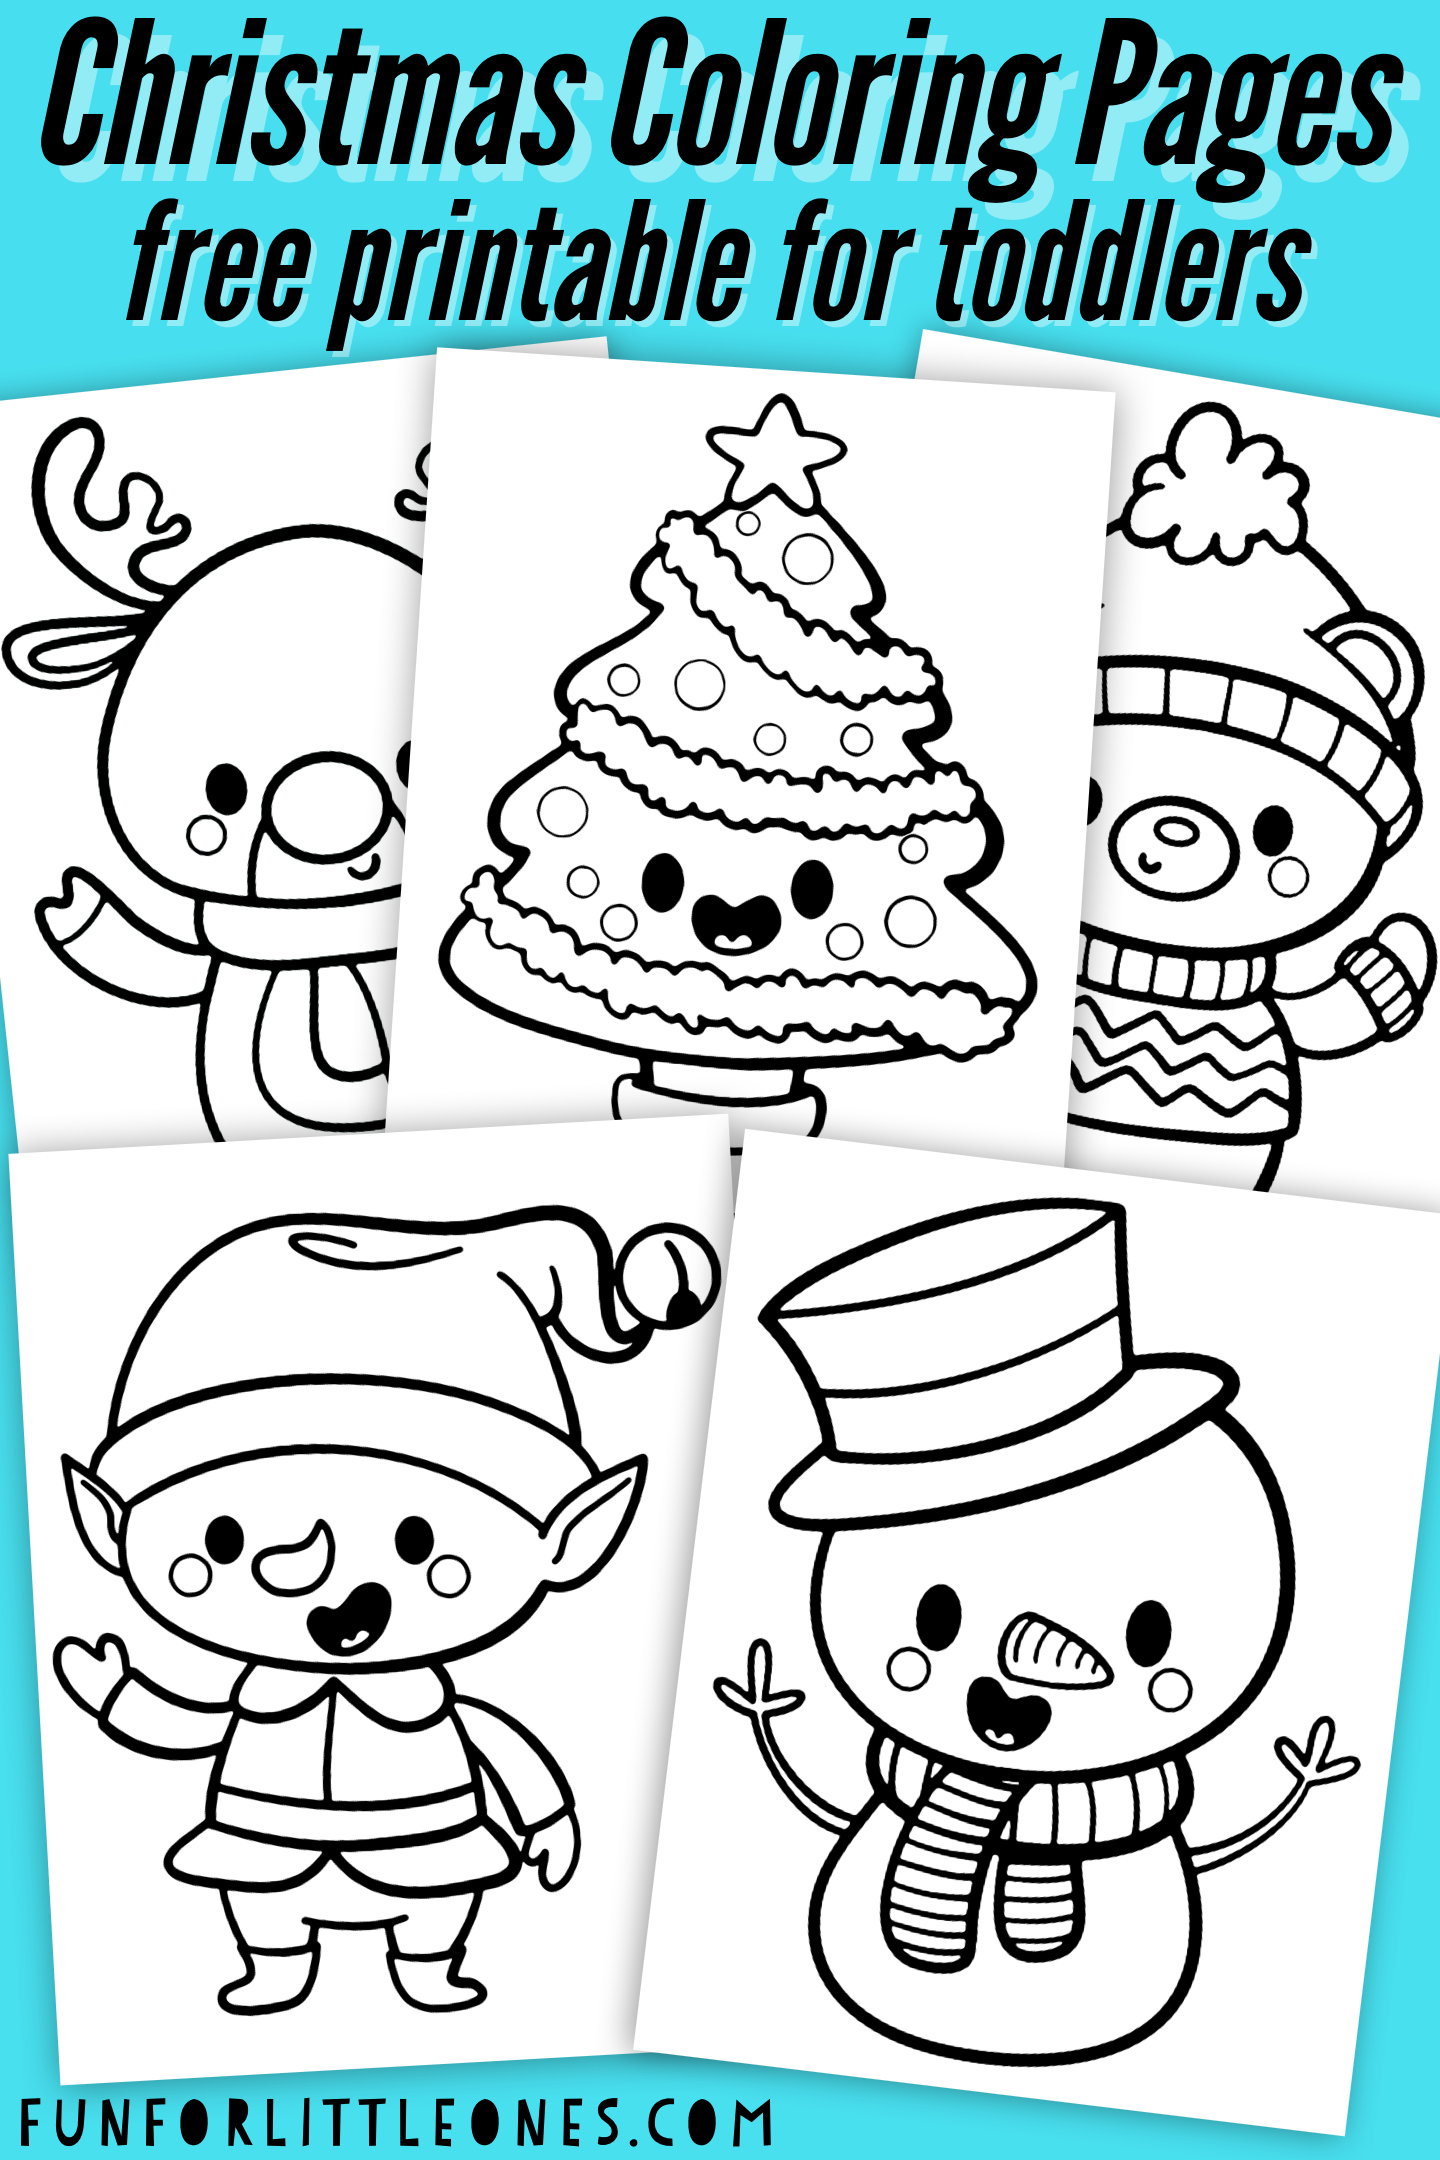 Christmas Coloring Pages for Toddlers (Free Printable)  Printable